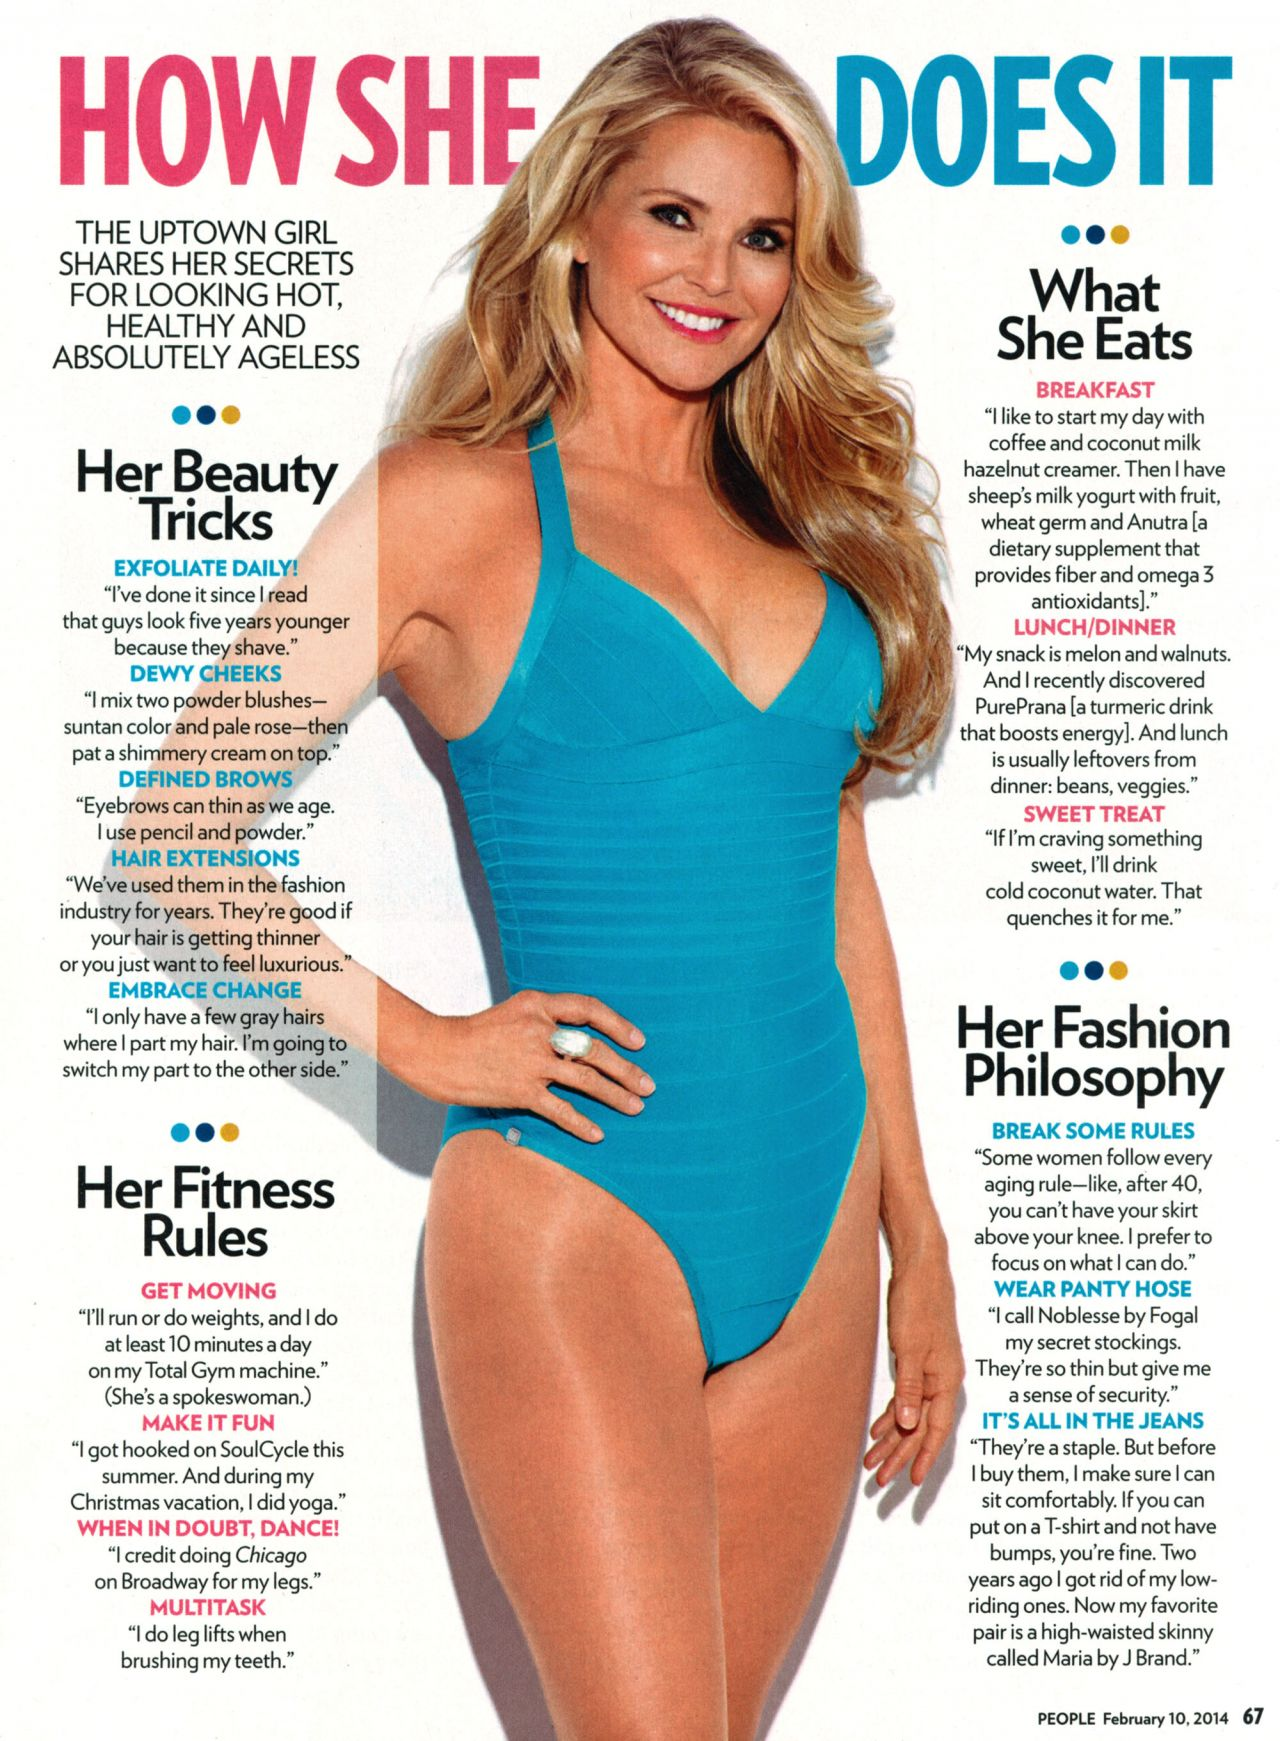 Christie Brinkley - PEOPLE Magazine - February 10, 2014 Issue